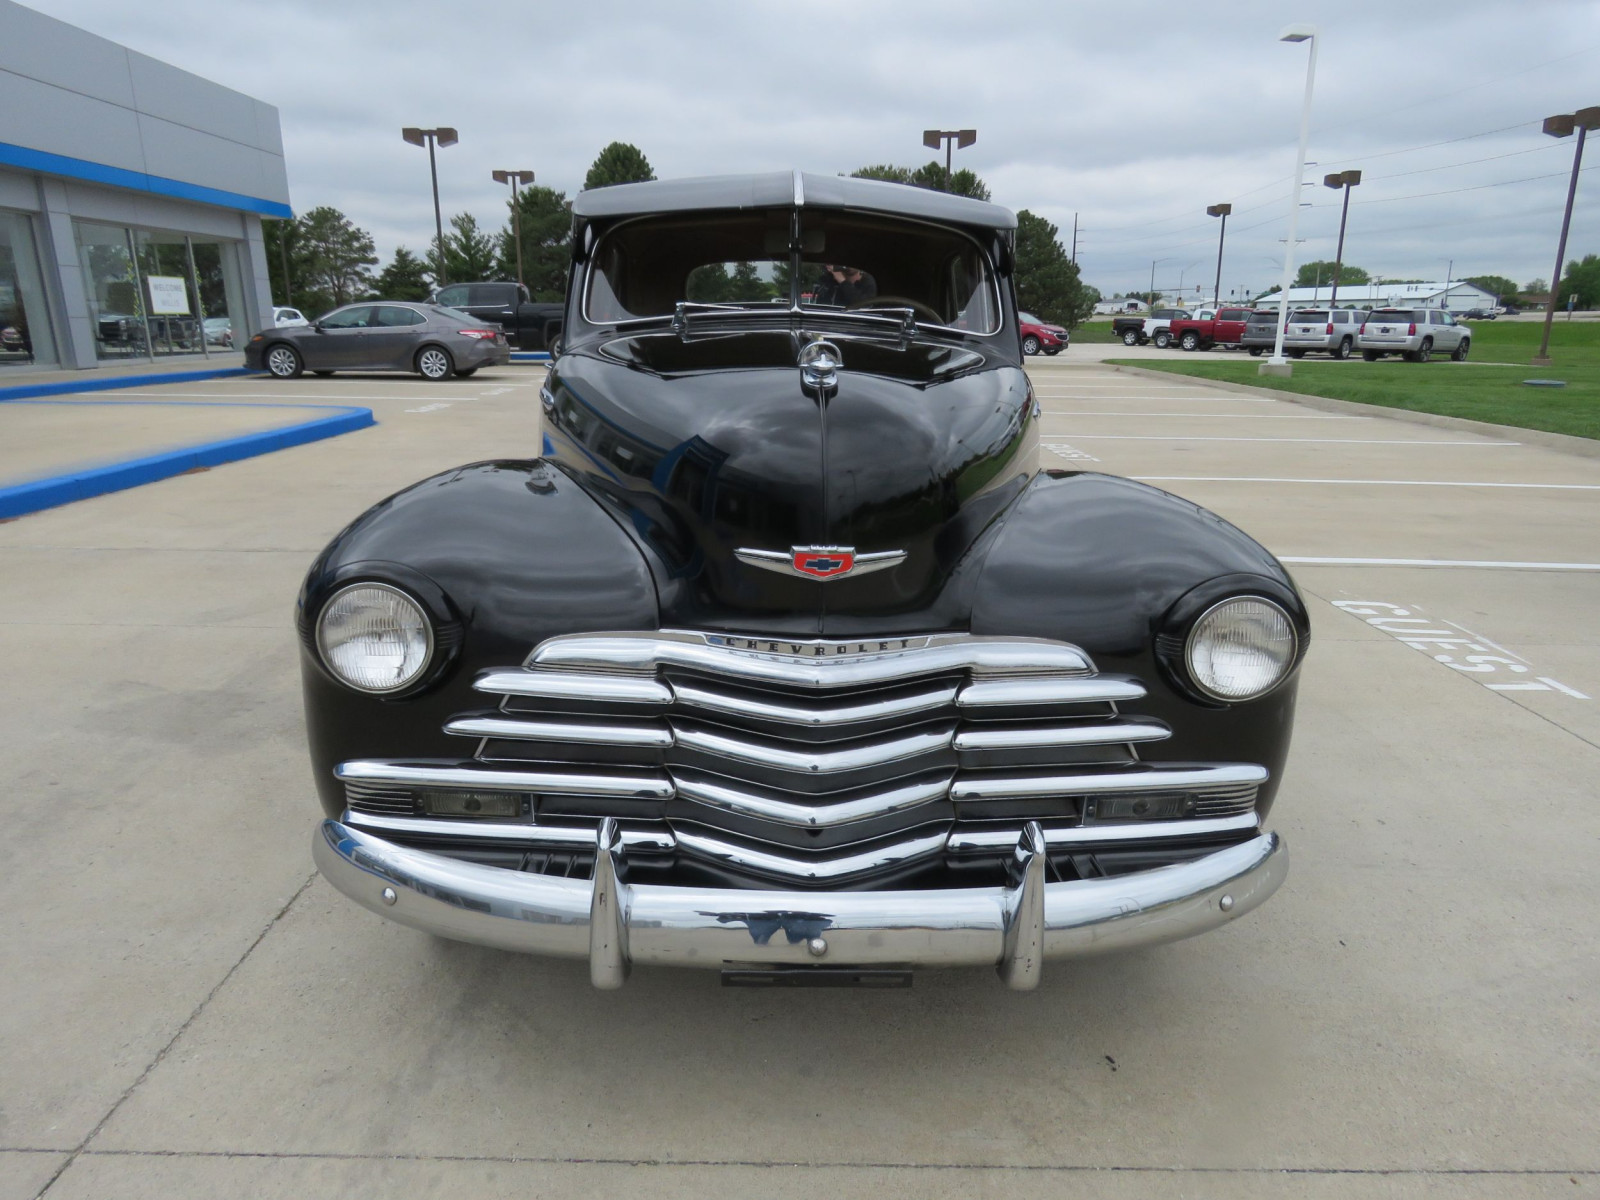 1947 Chevrolet Fleetline 4dr Sedan - Image 3